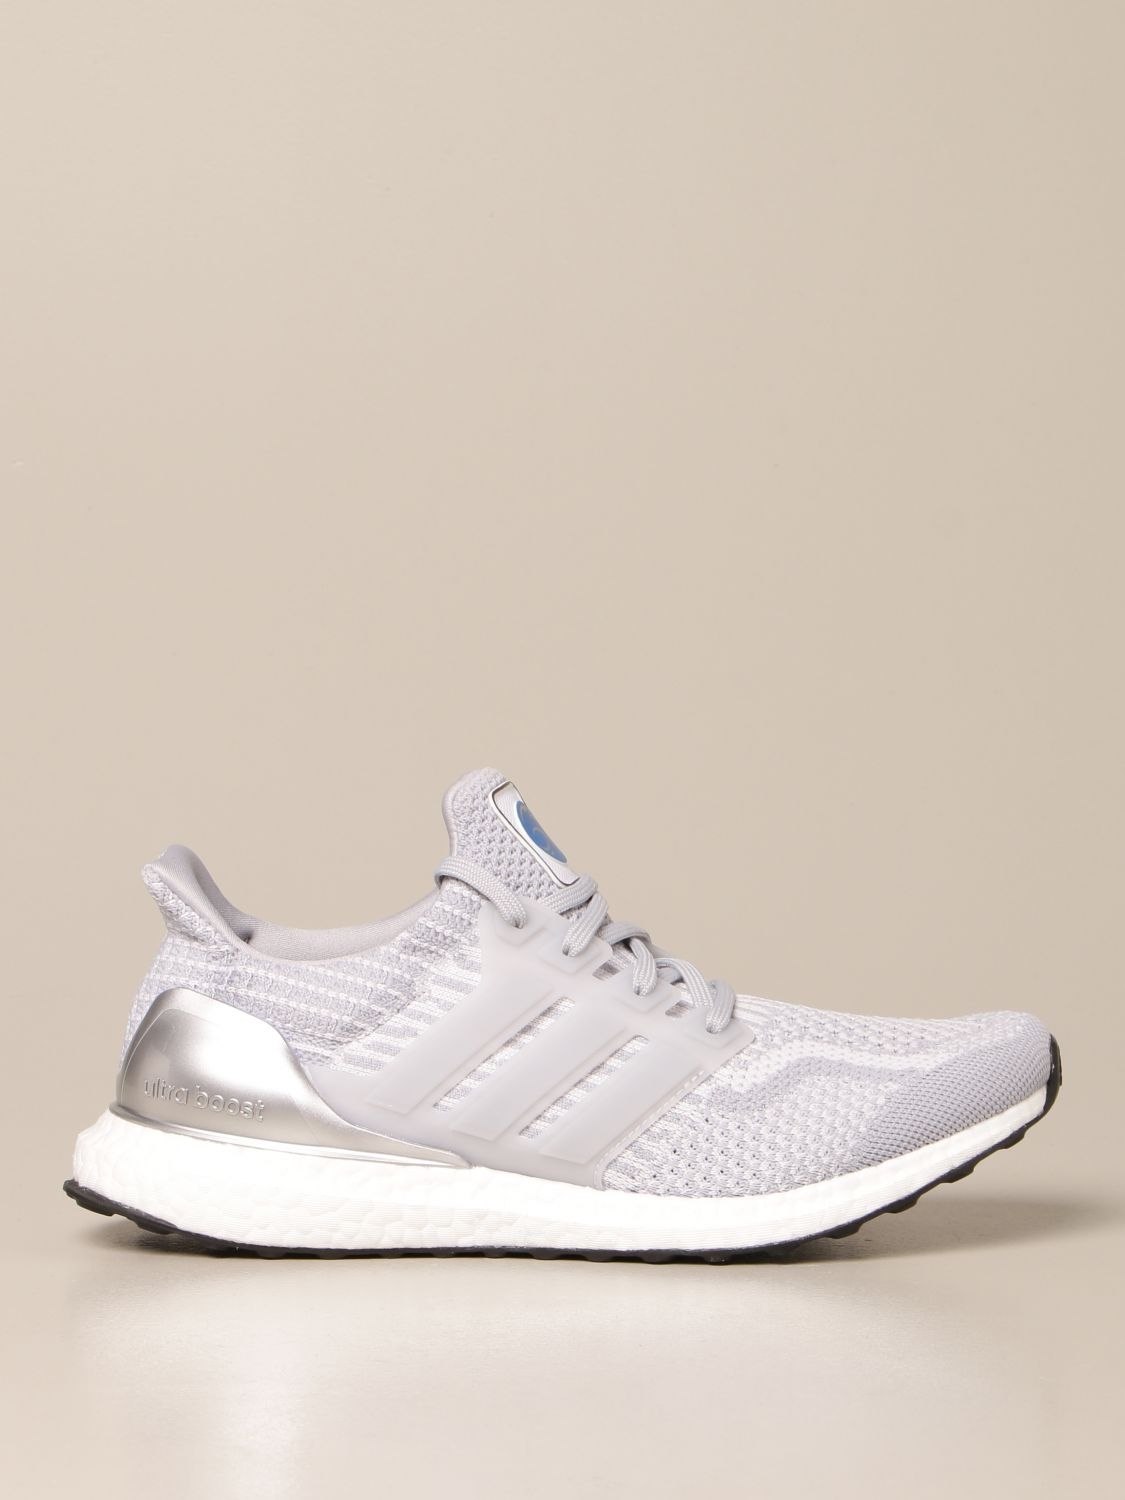 Trainers Adidas Originals: Ultraboost Adidas Originals sneakers in Primeknit grey 1